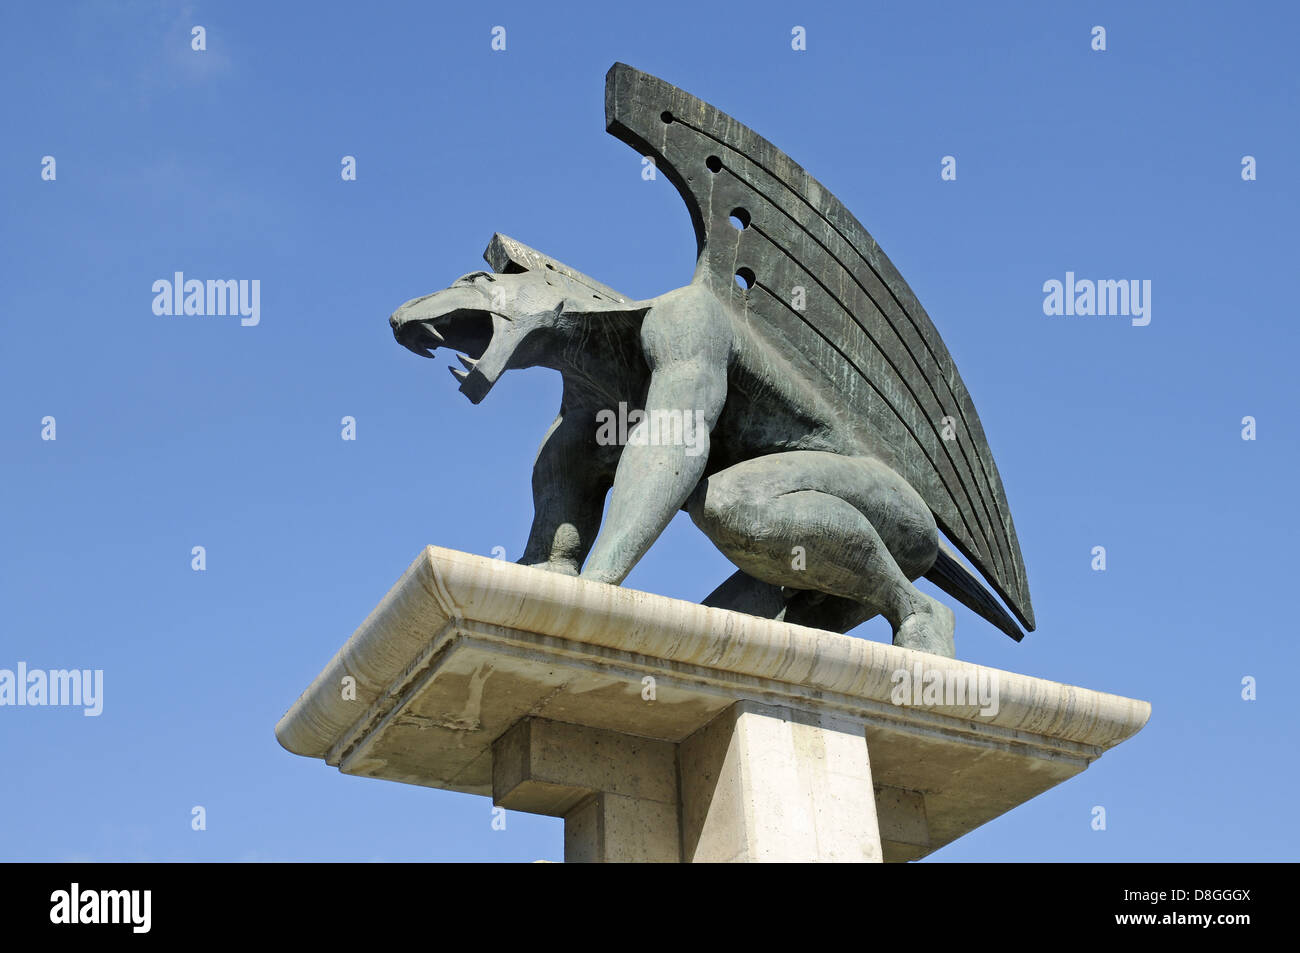 Griffin - Stock Image